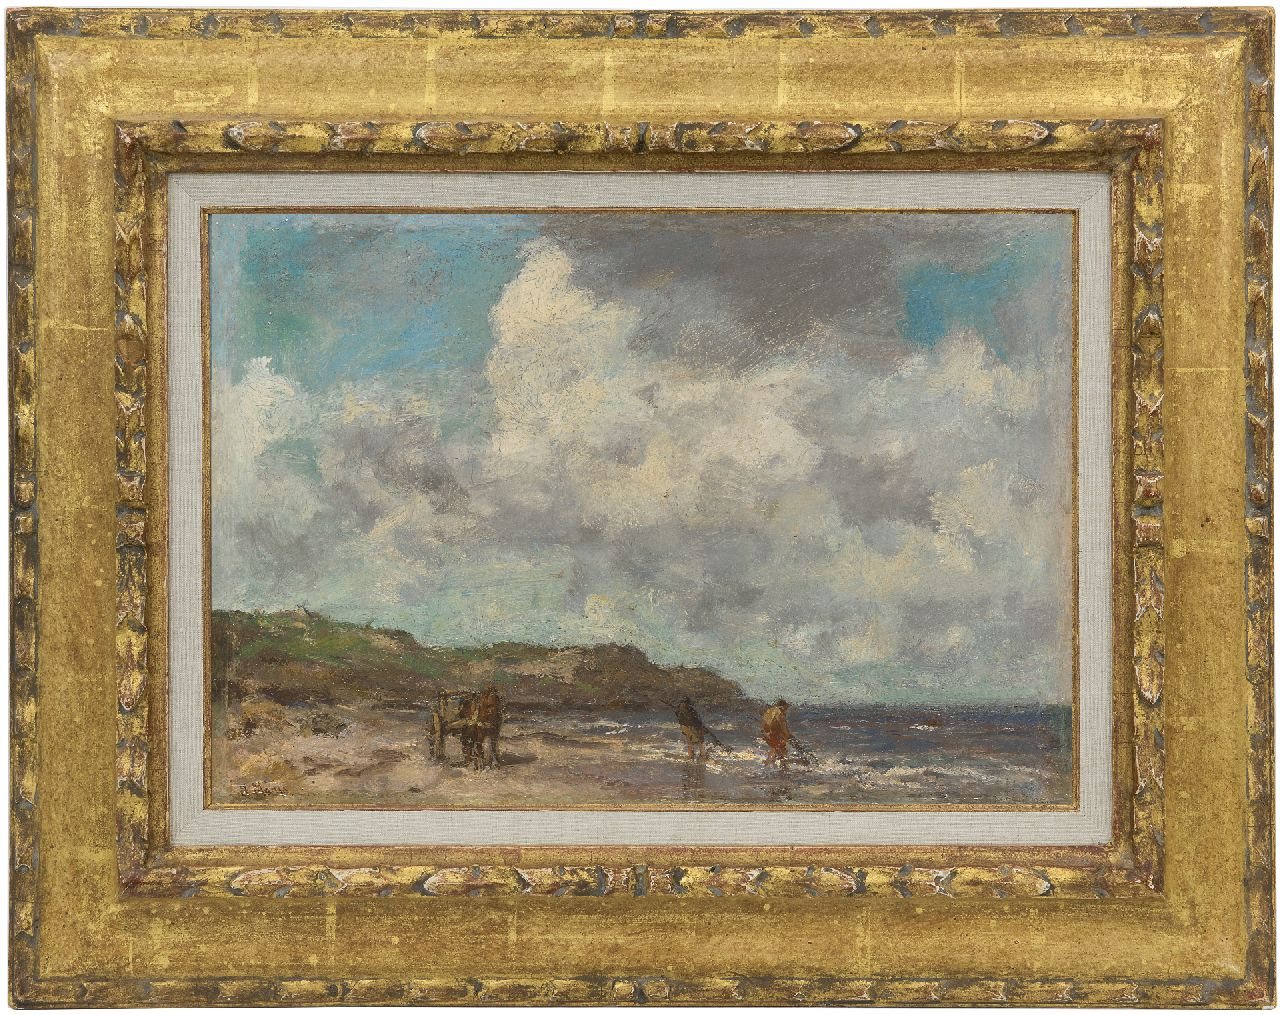 Maris J.H.  | Jacobus Hendricus 'Jacob' Maris | Paintings offered for sale | Shell fishermen in the breakers, oil on panel 26.3 x 37.5 cm, signed l.l.